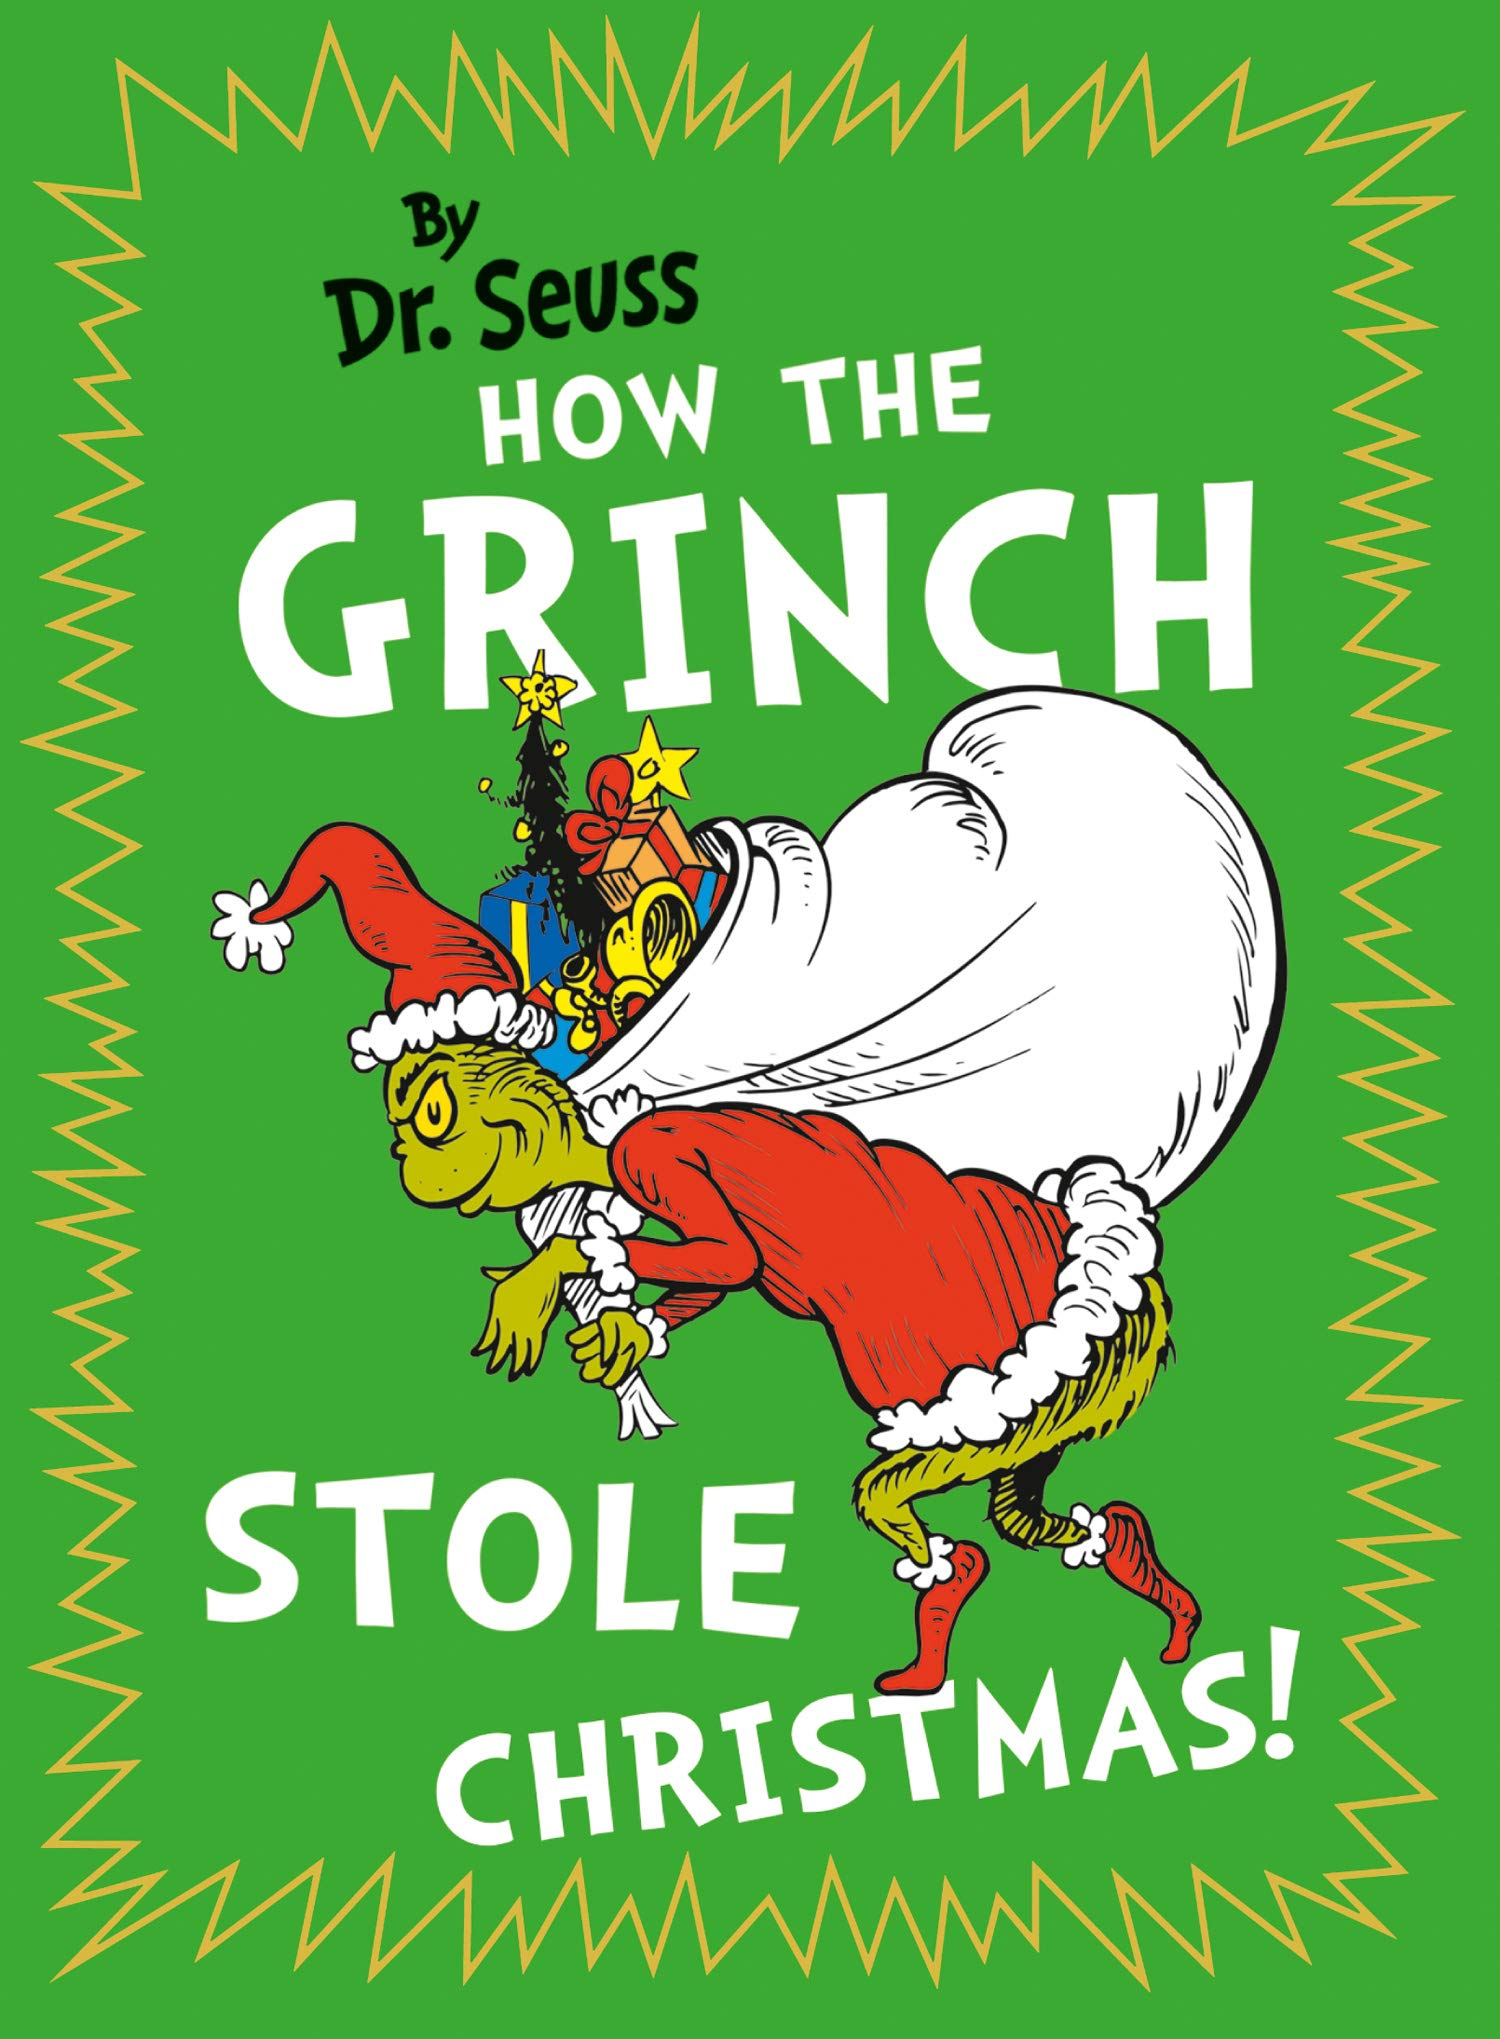 how the grinch stole christmas pocket edition dr seuss amazoncouk dr seuss 9780008183493 books